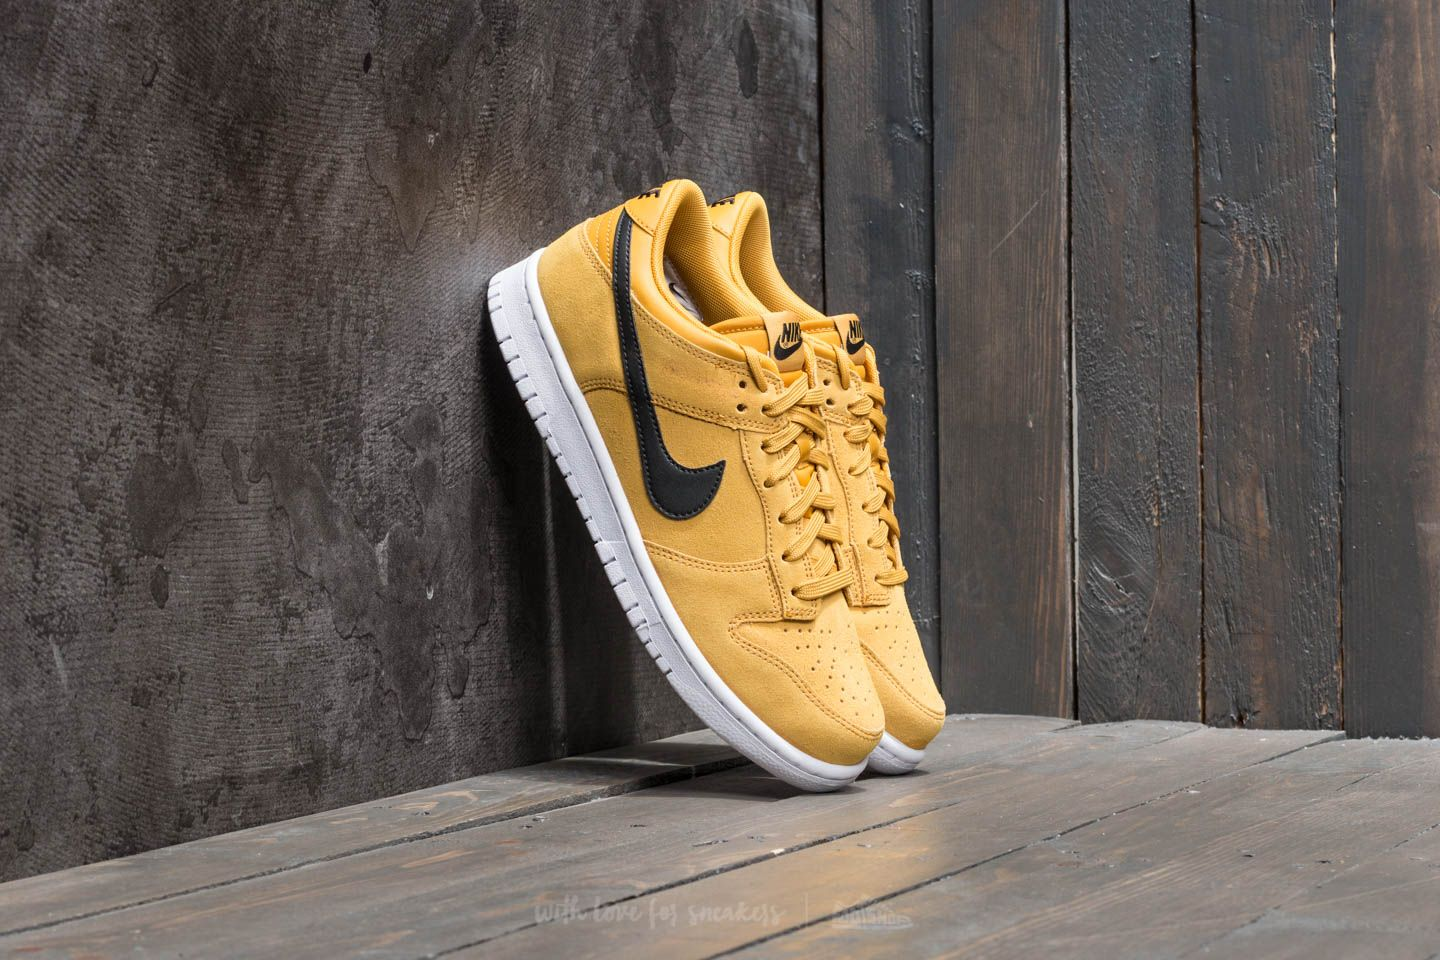 premium selection 76f52 629ce Nike Dunk Low Mineral Yellow  Black-White   Footshop